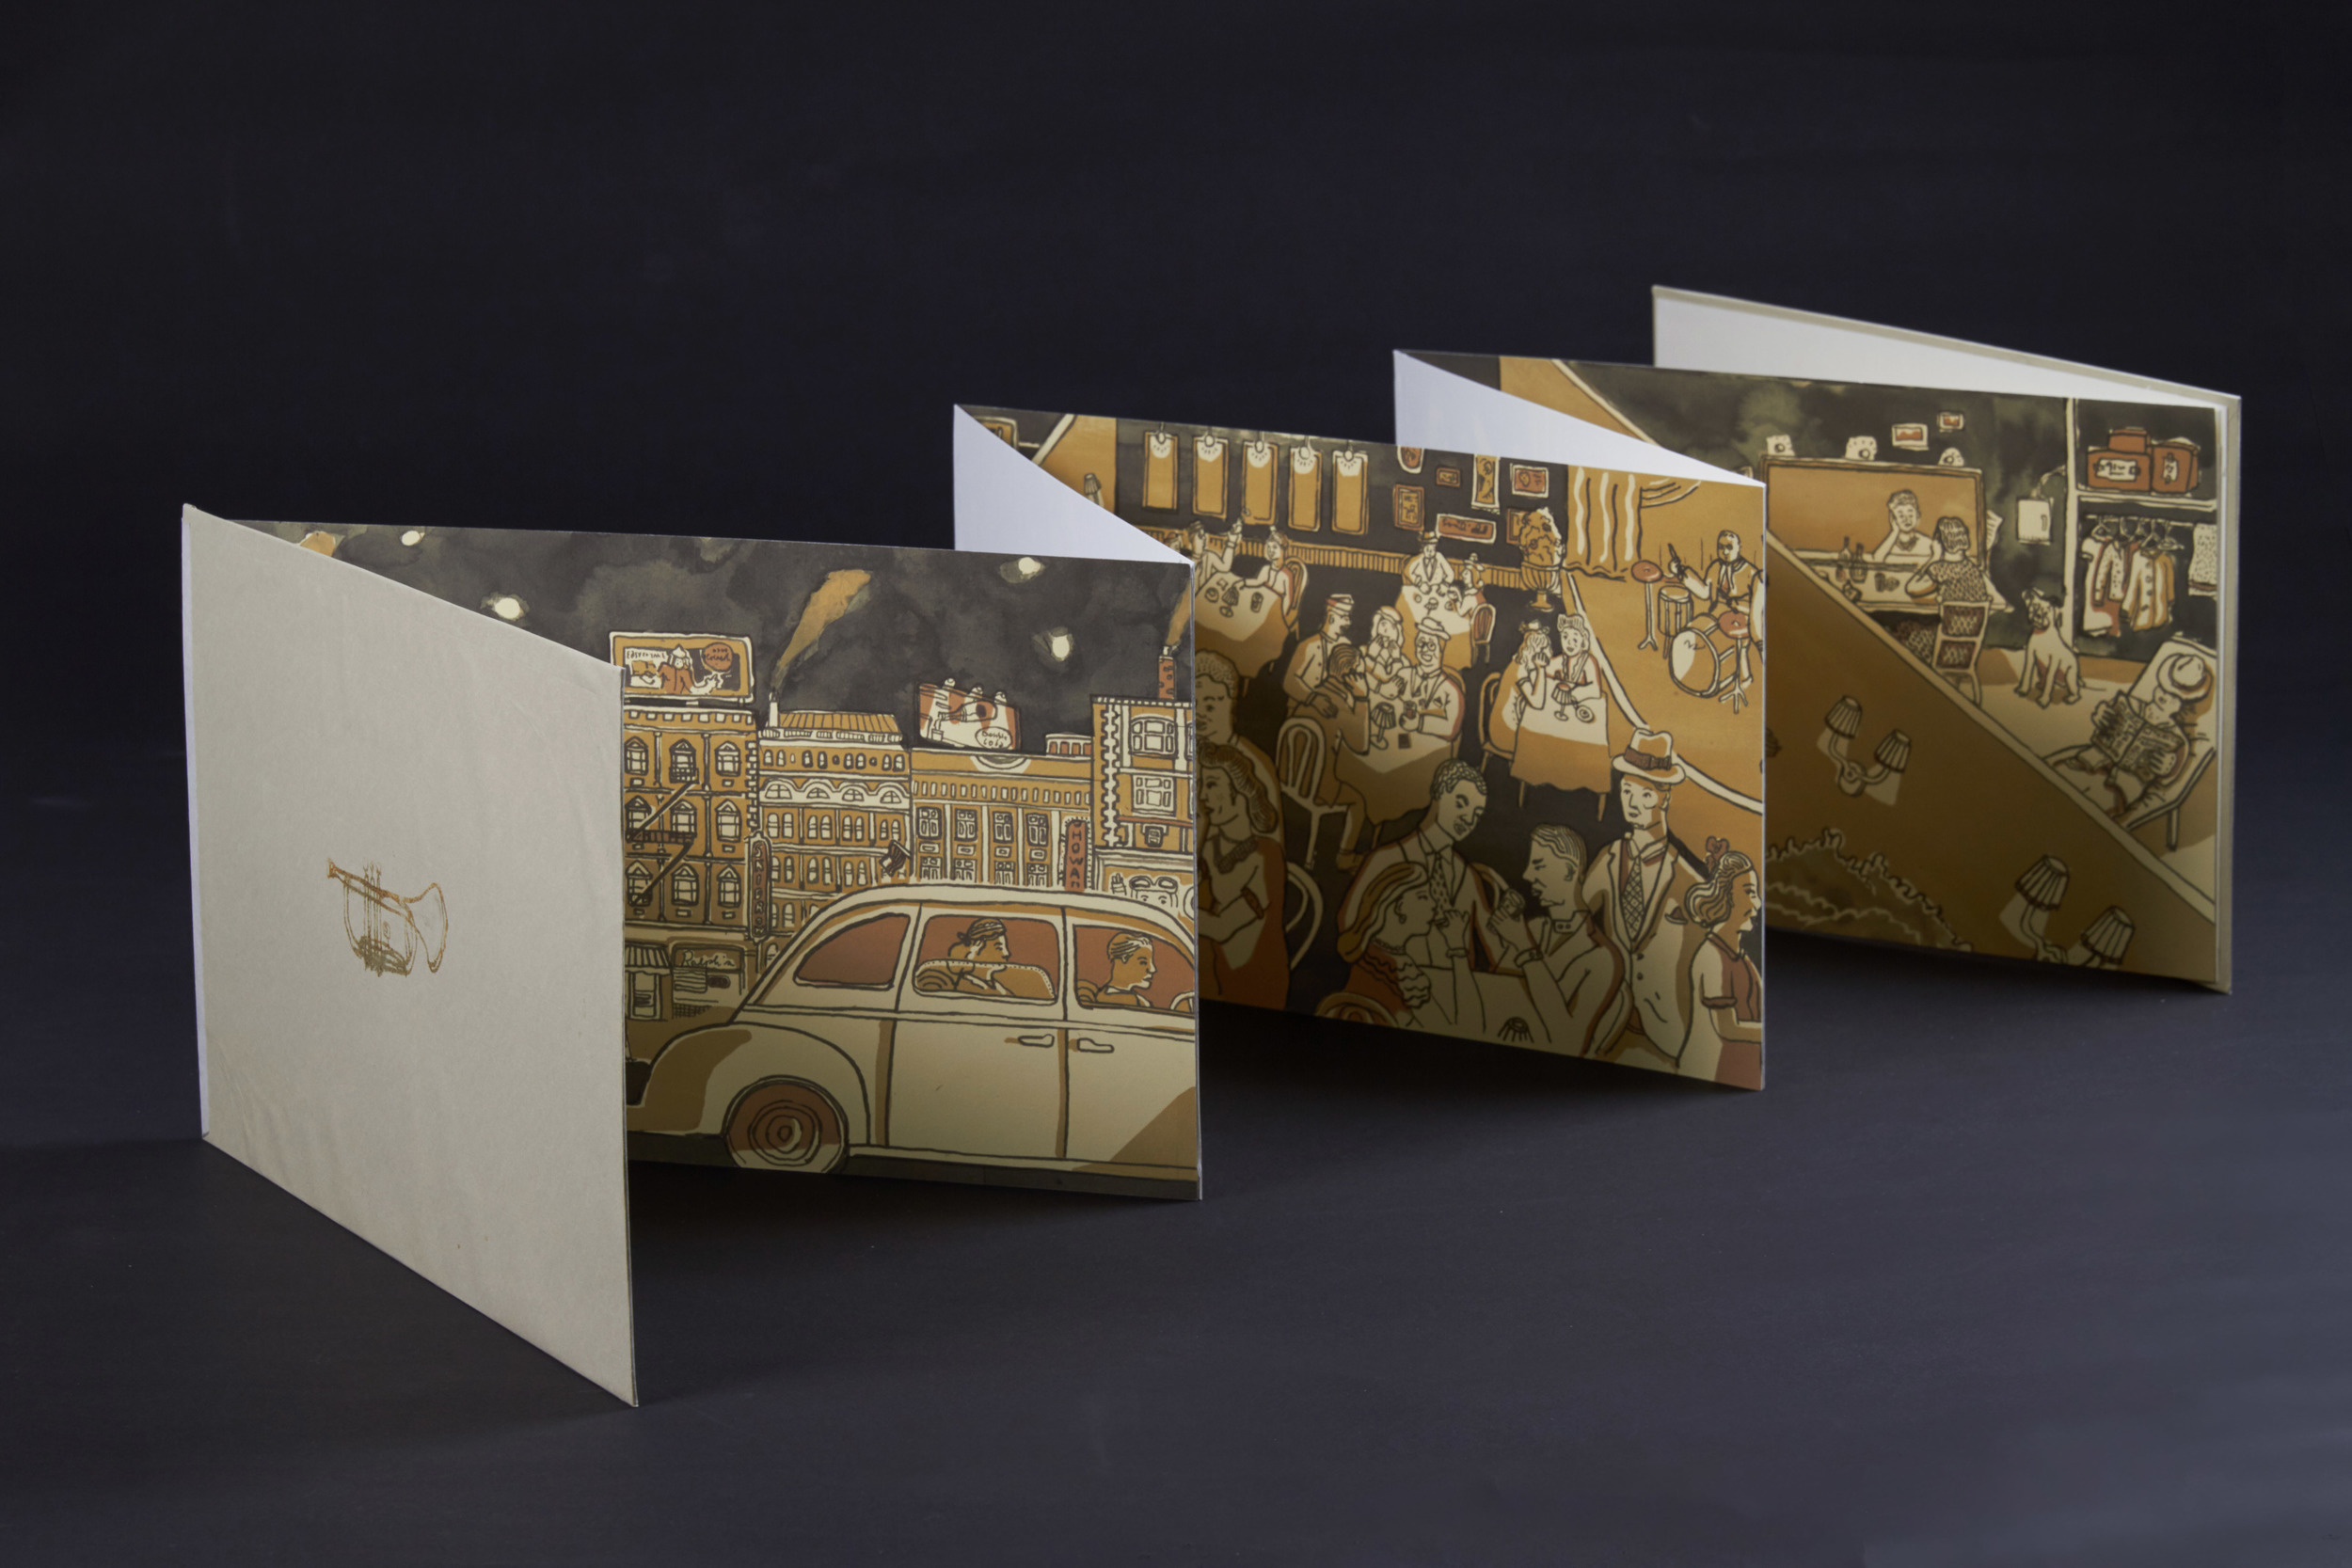 A long, connected illustration turned into 5 paneled accordion book